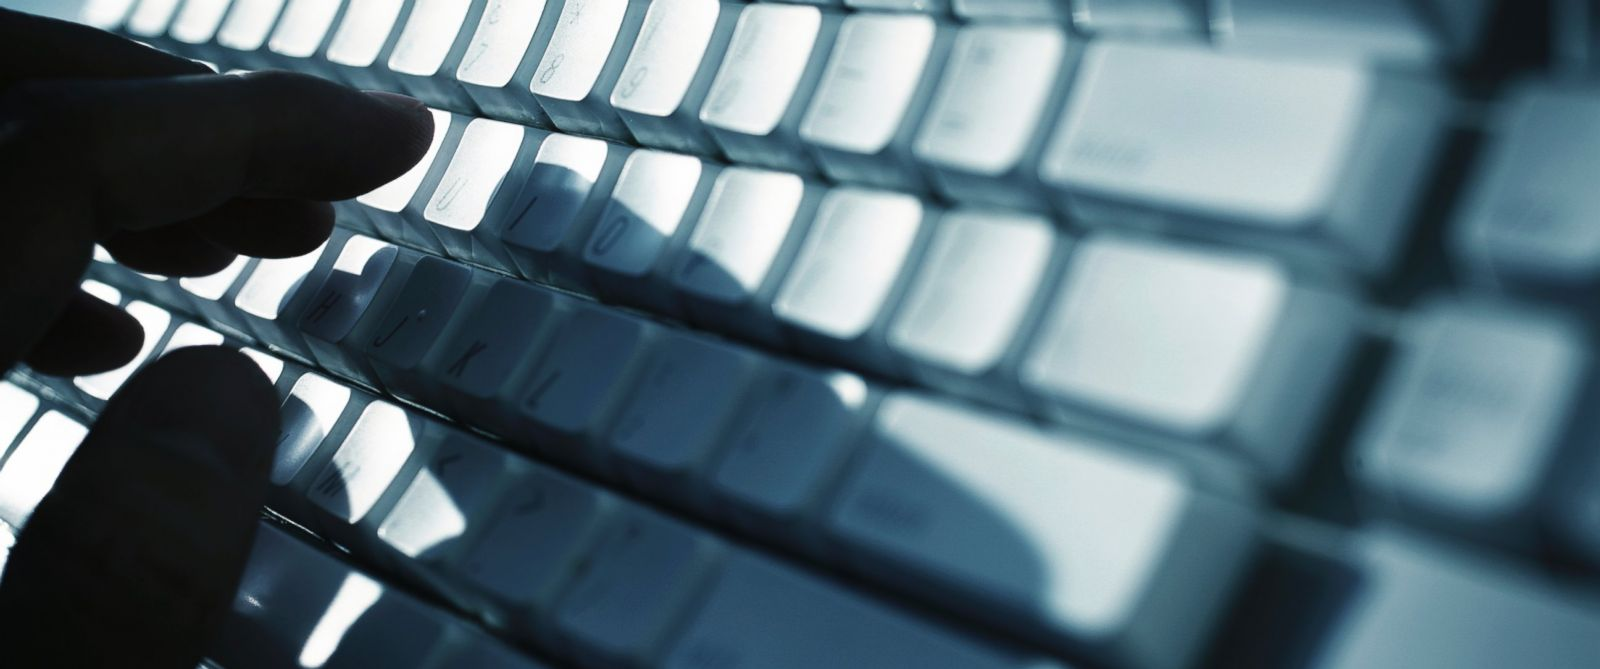 """PHOTO: A new bug called """"Shellshock"""" may potentially leave millions of computers vulnerable to attacks."""